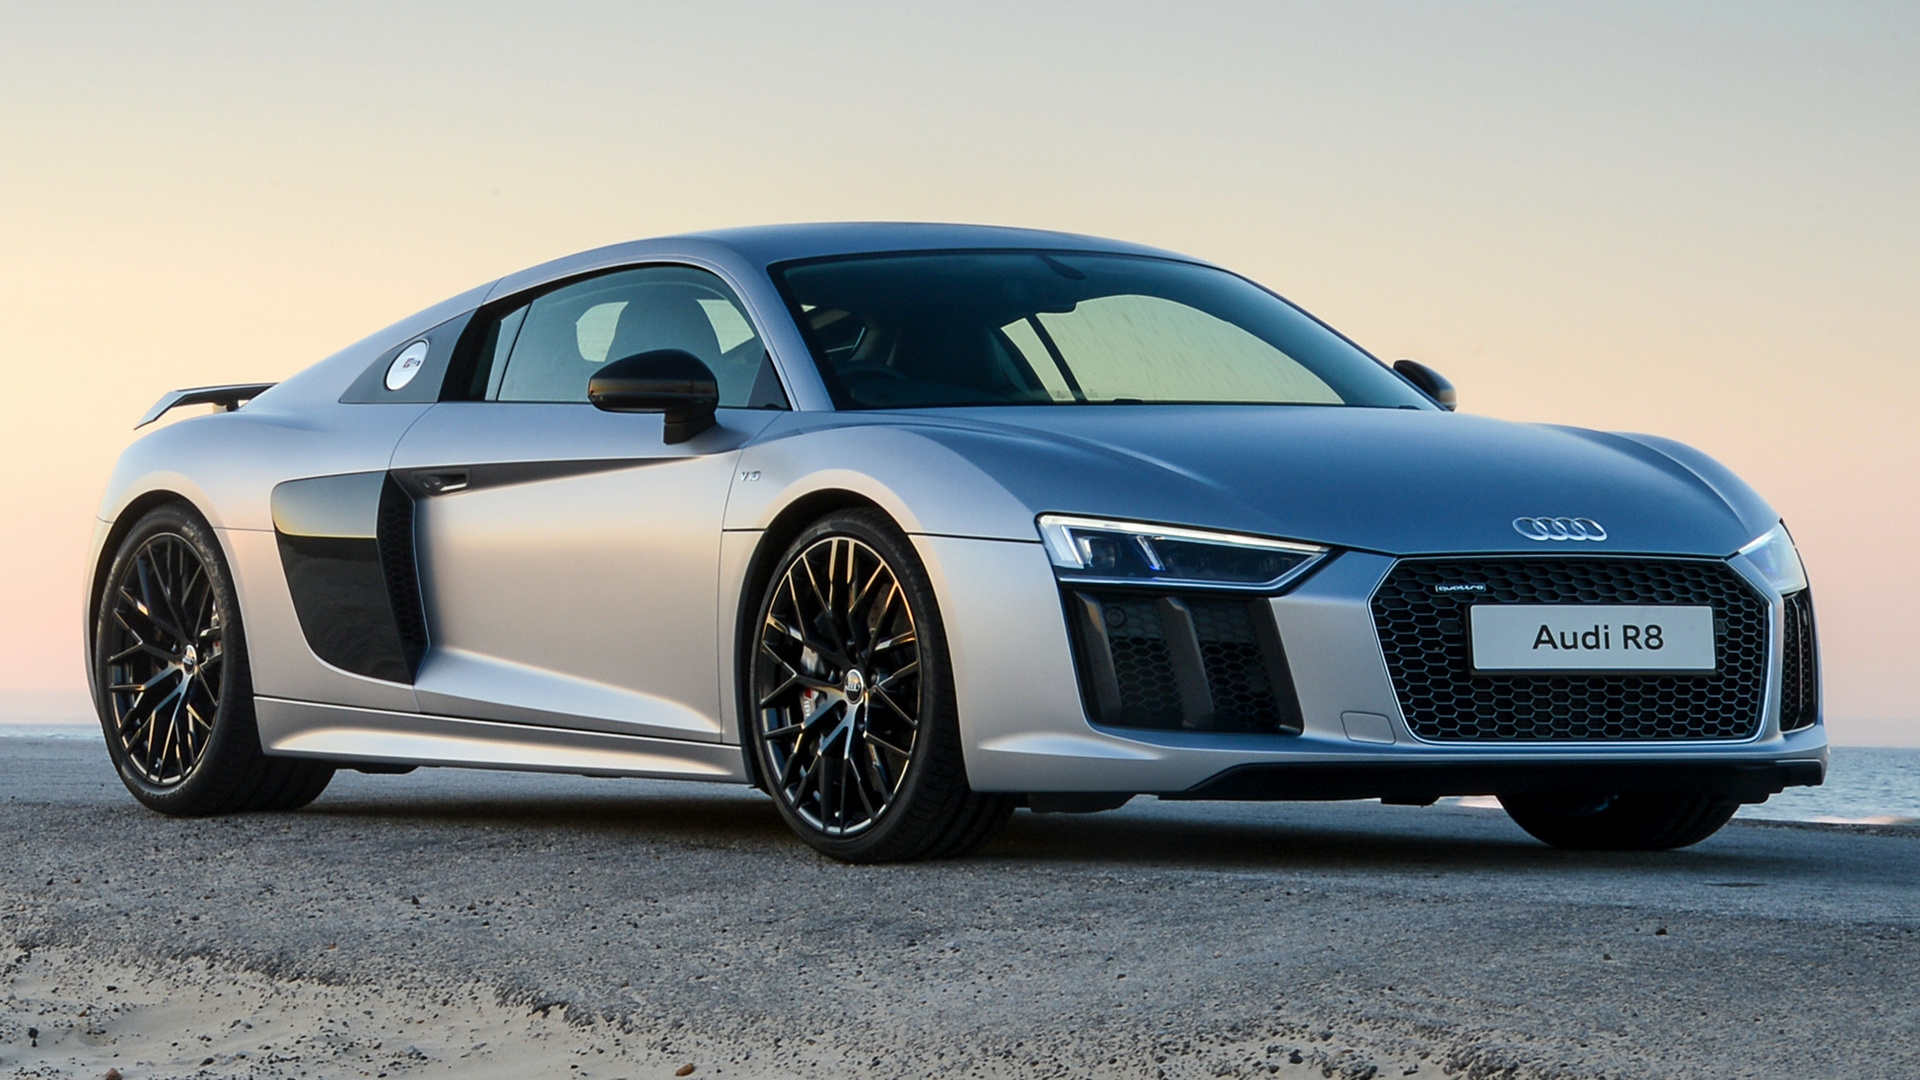 Audi Wallpapers Backgrounds In For Free Download Hd